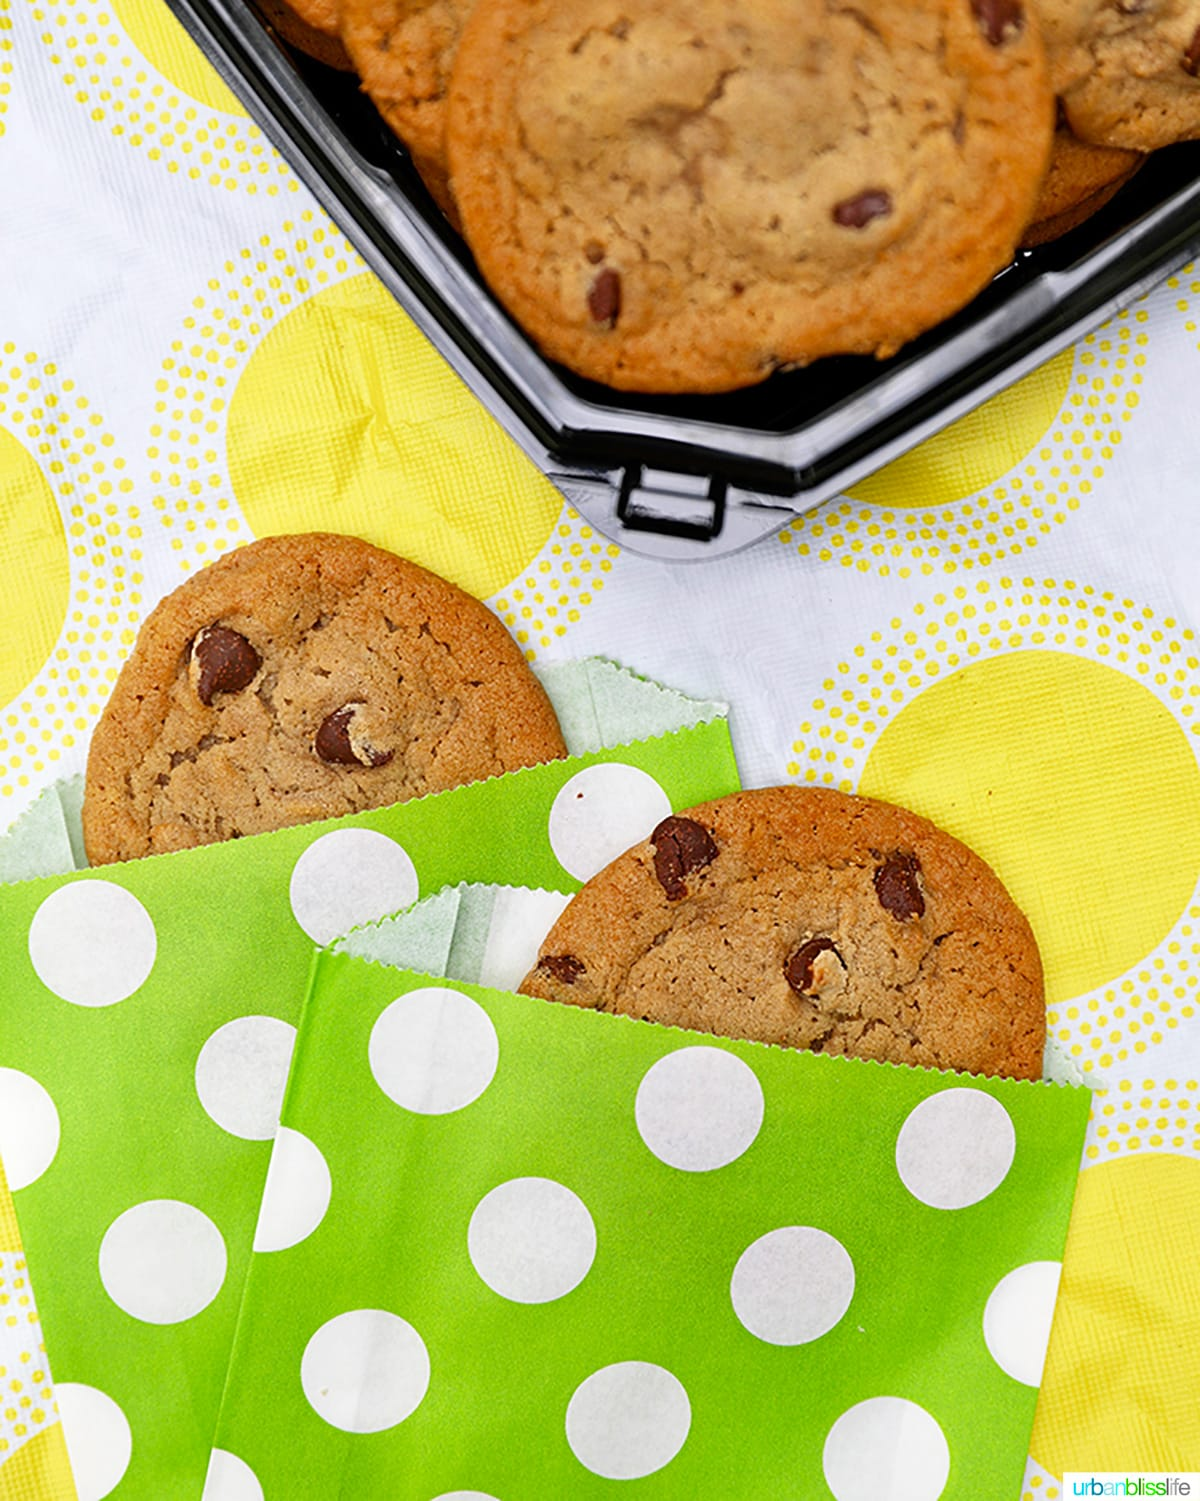 chocolate chip cookies in cute bright green paper sleeves against yellow and white tablecloth